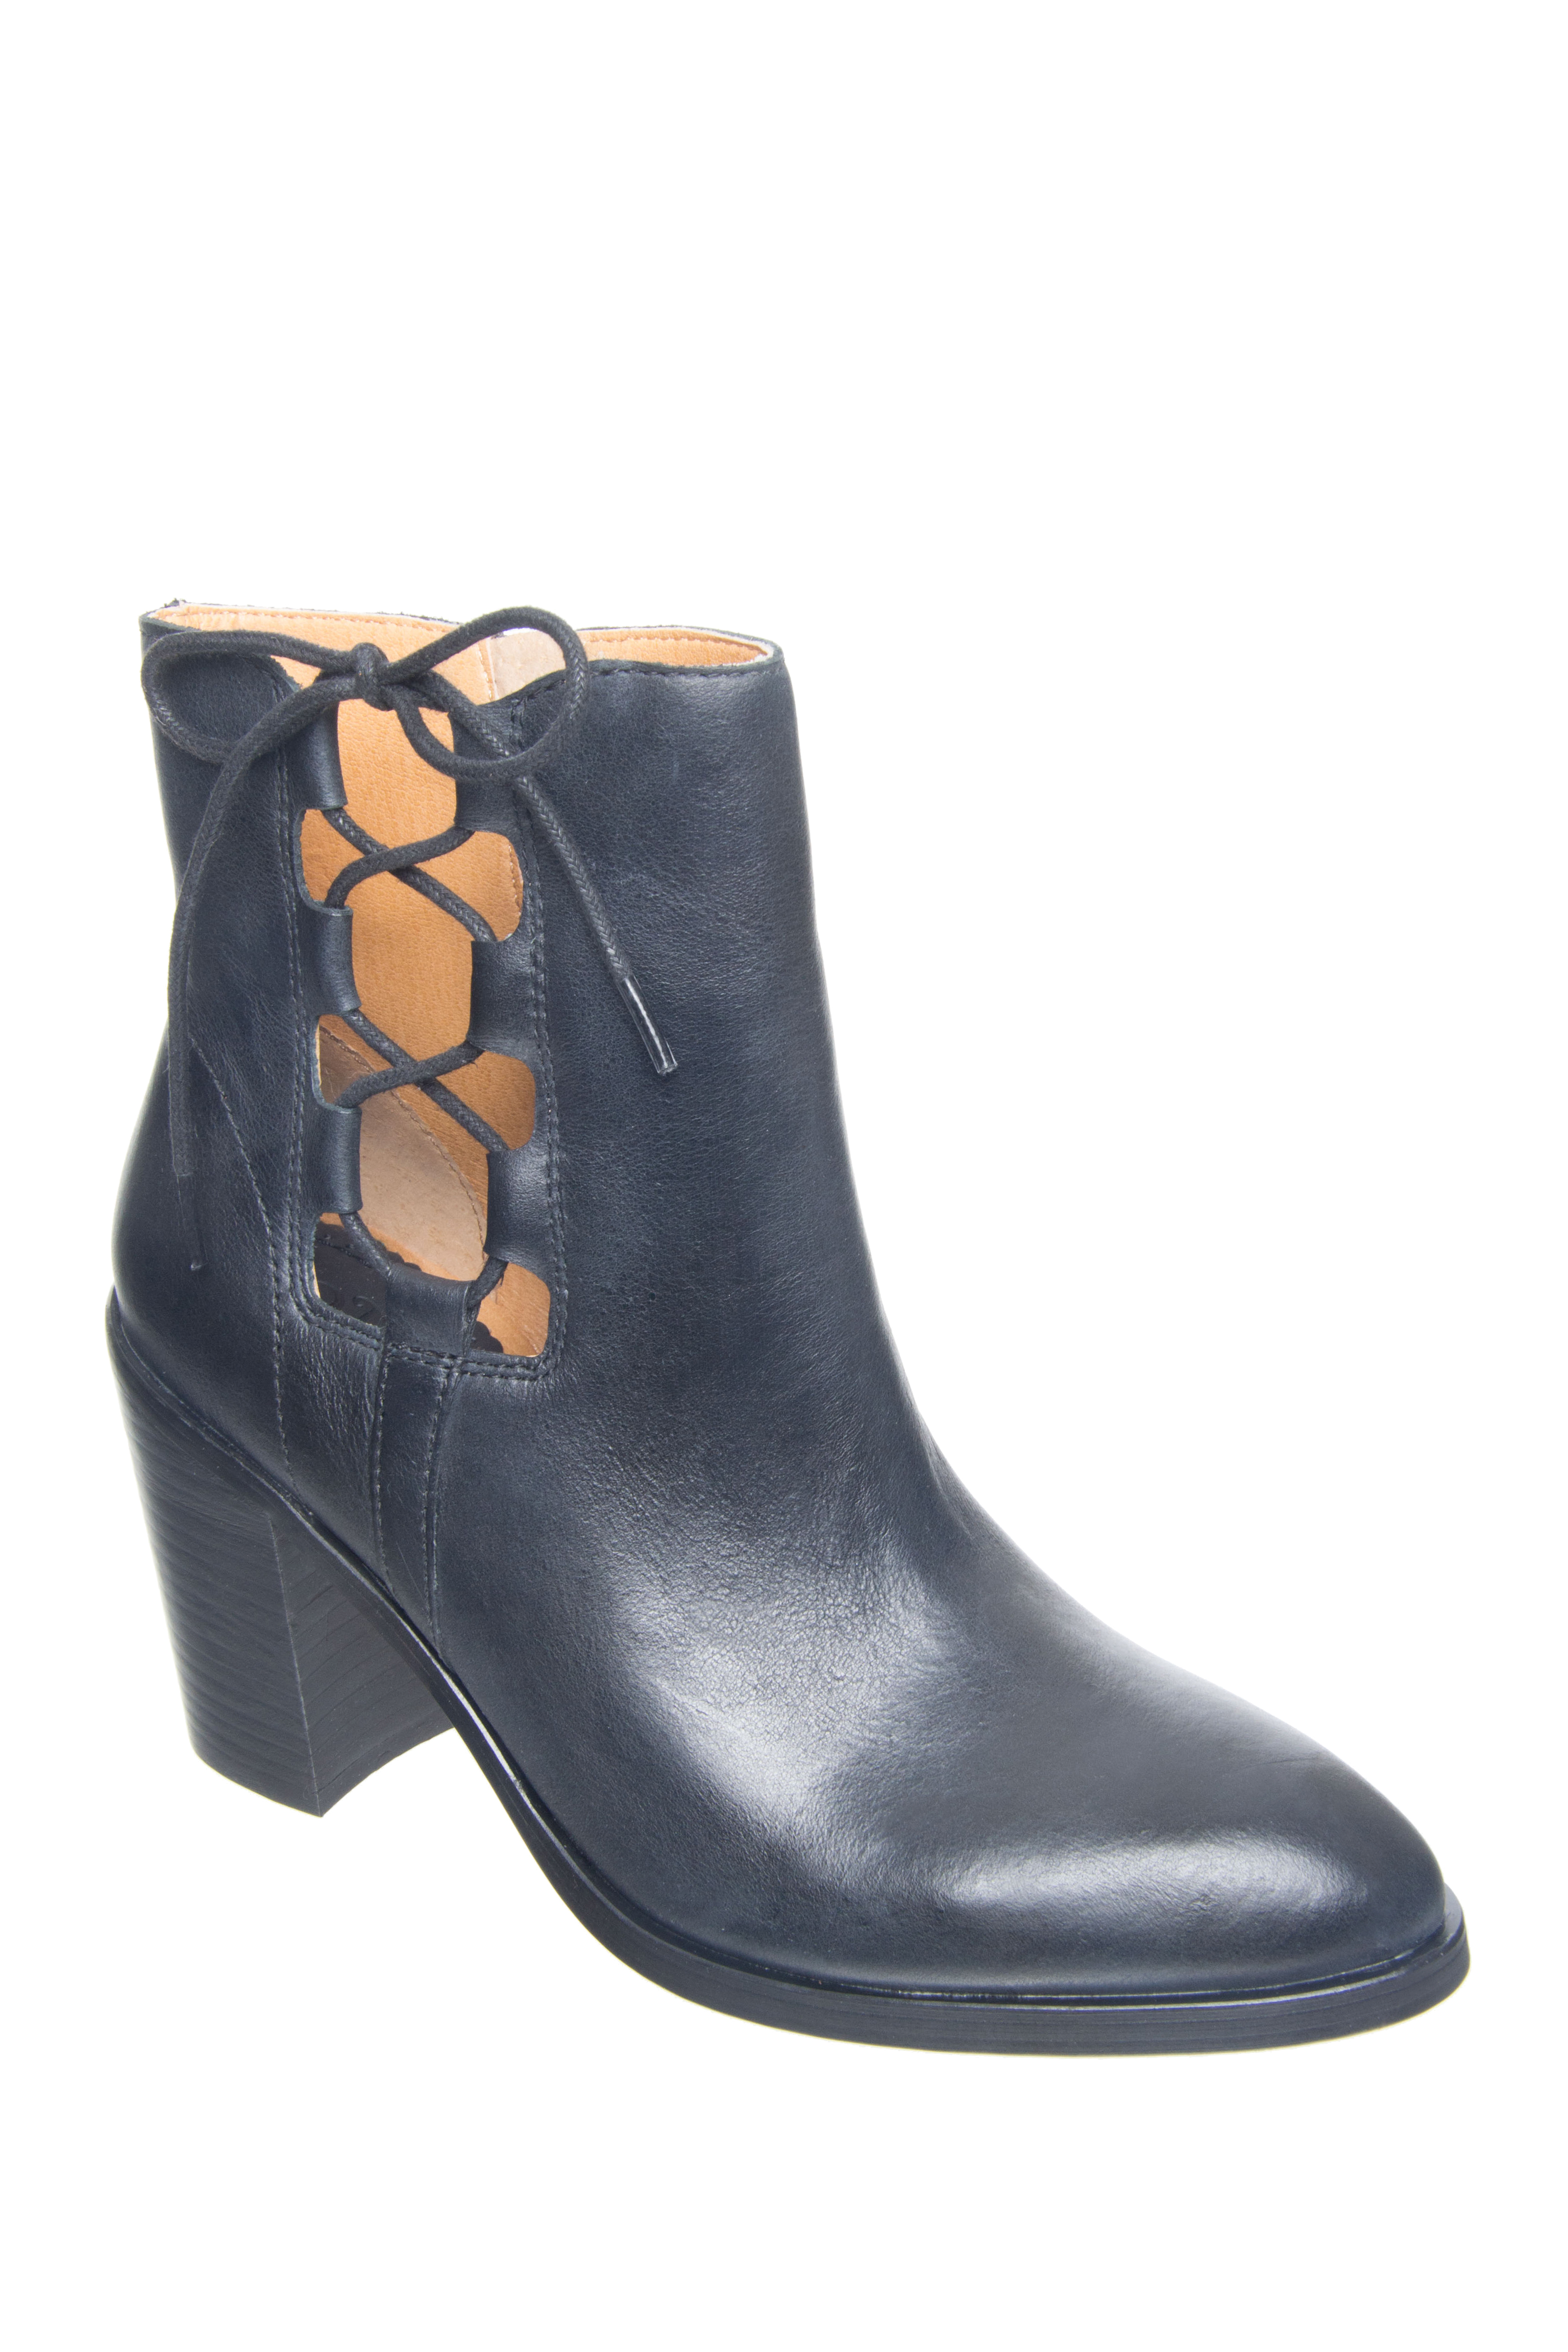 LATIGO Jace Lace Booties - Black